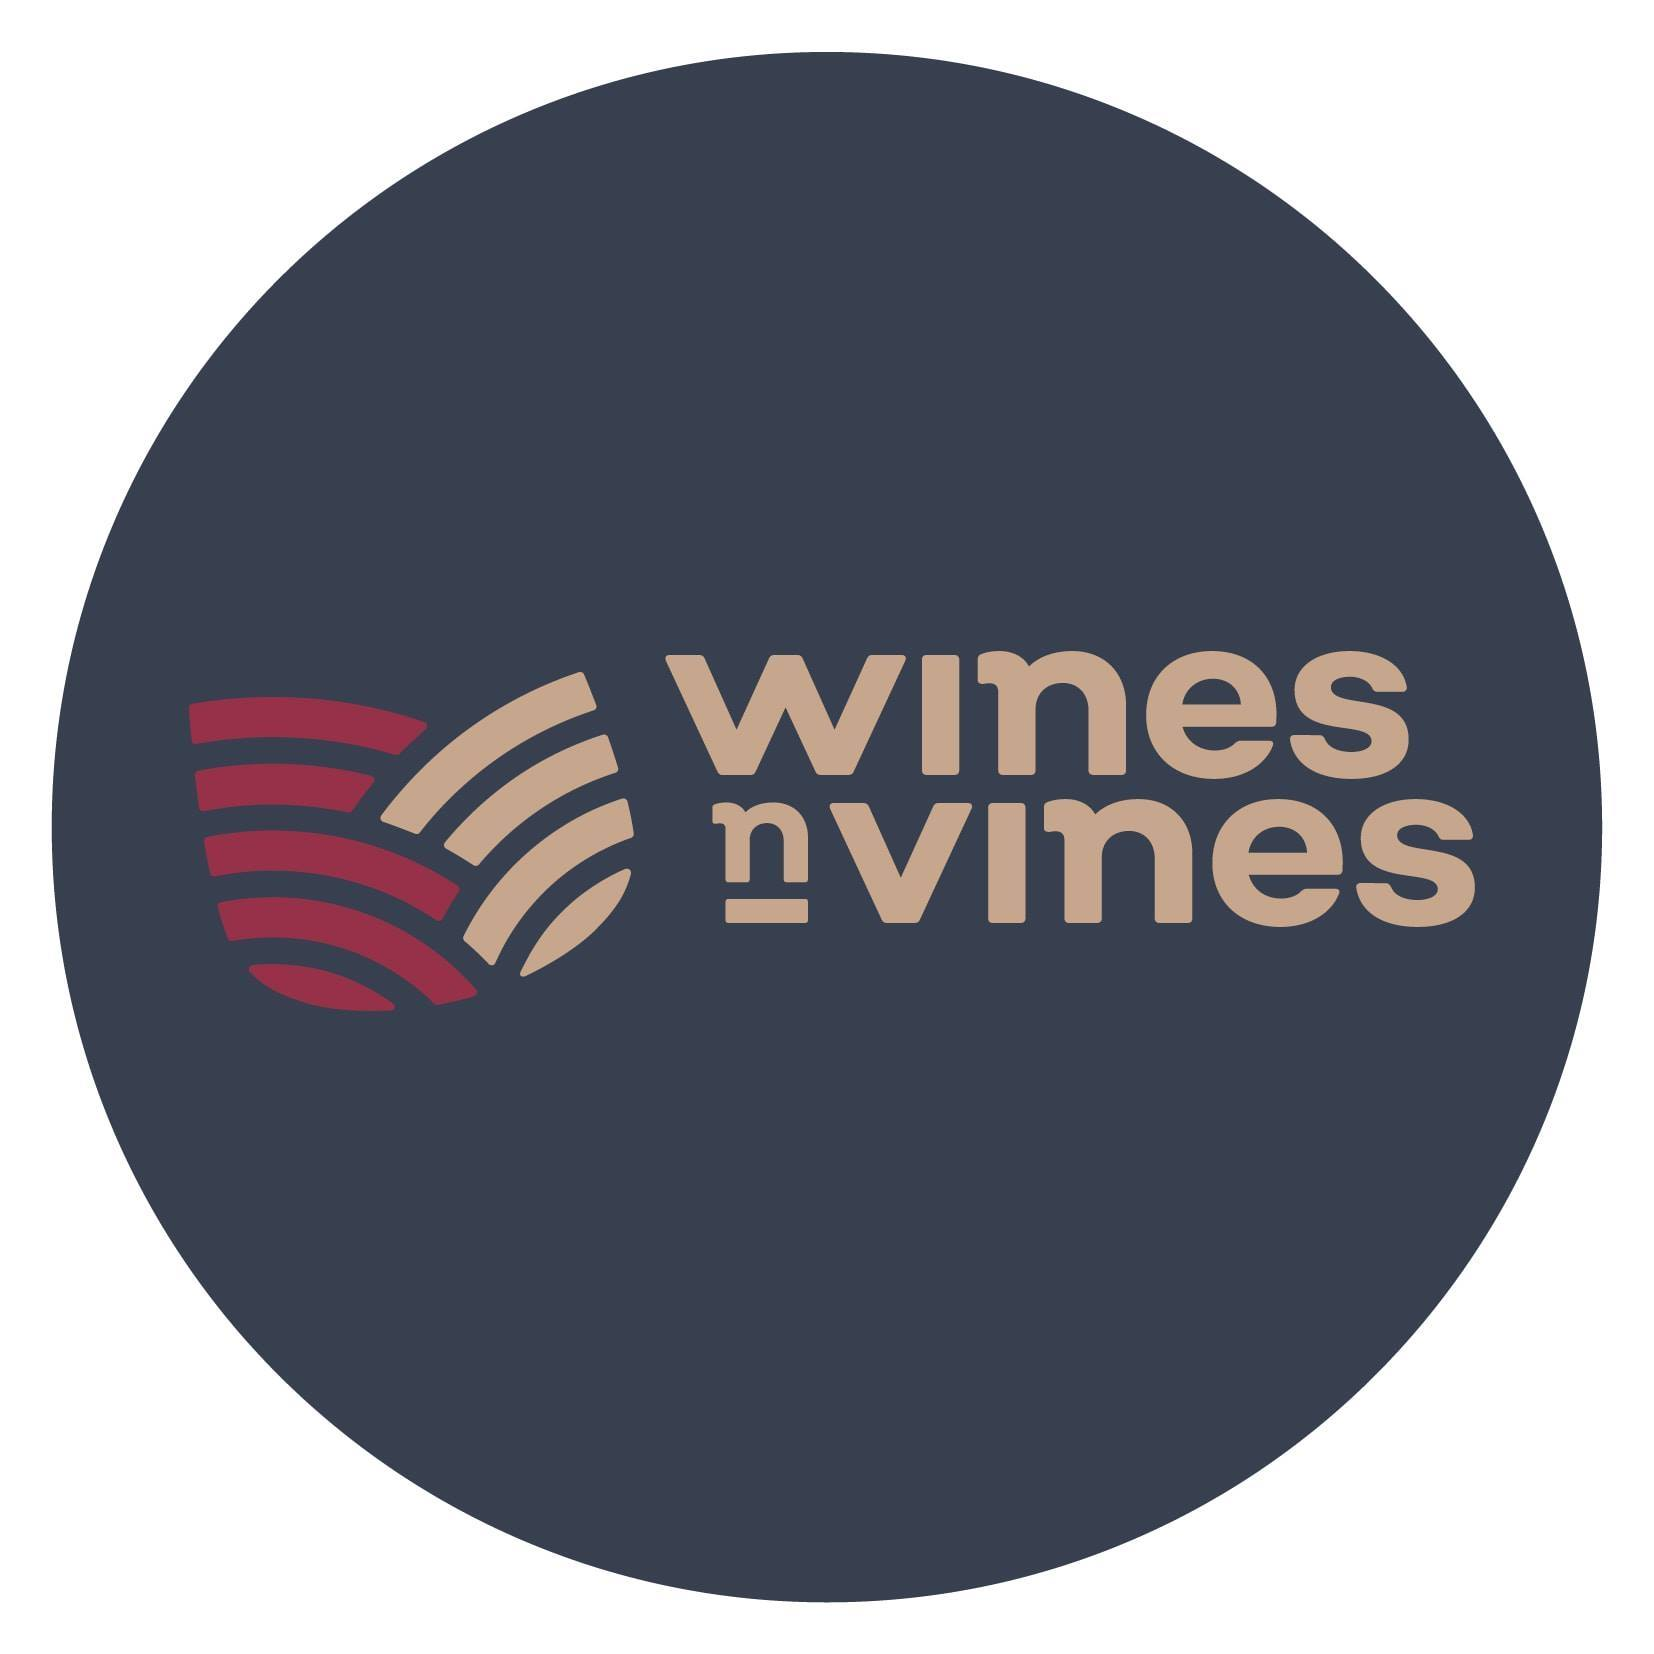 WinesnVines products